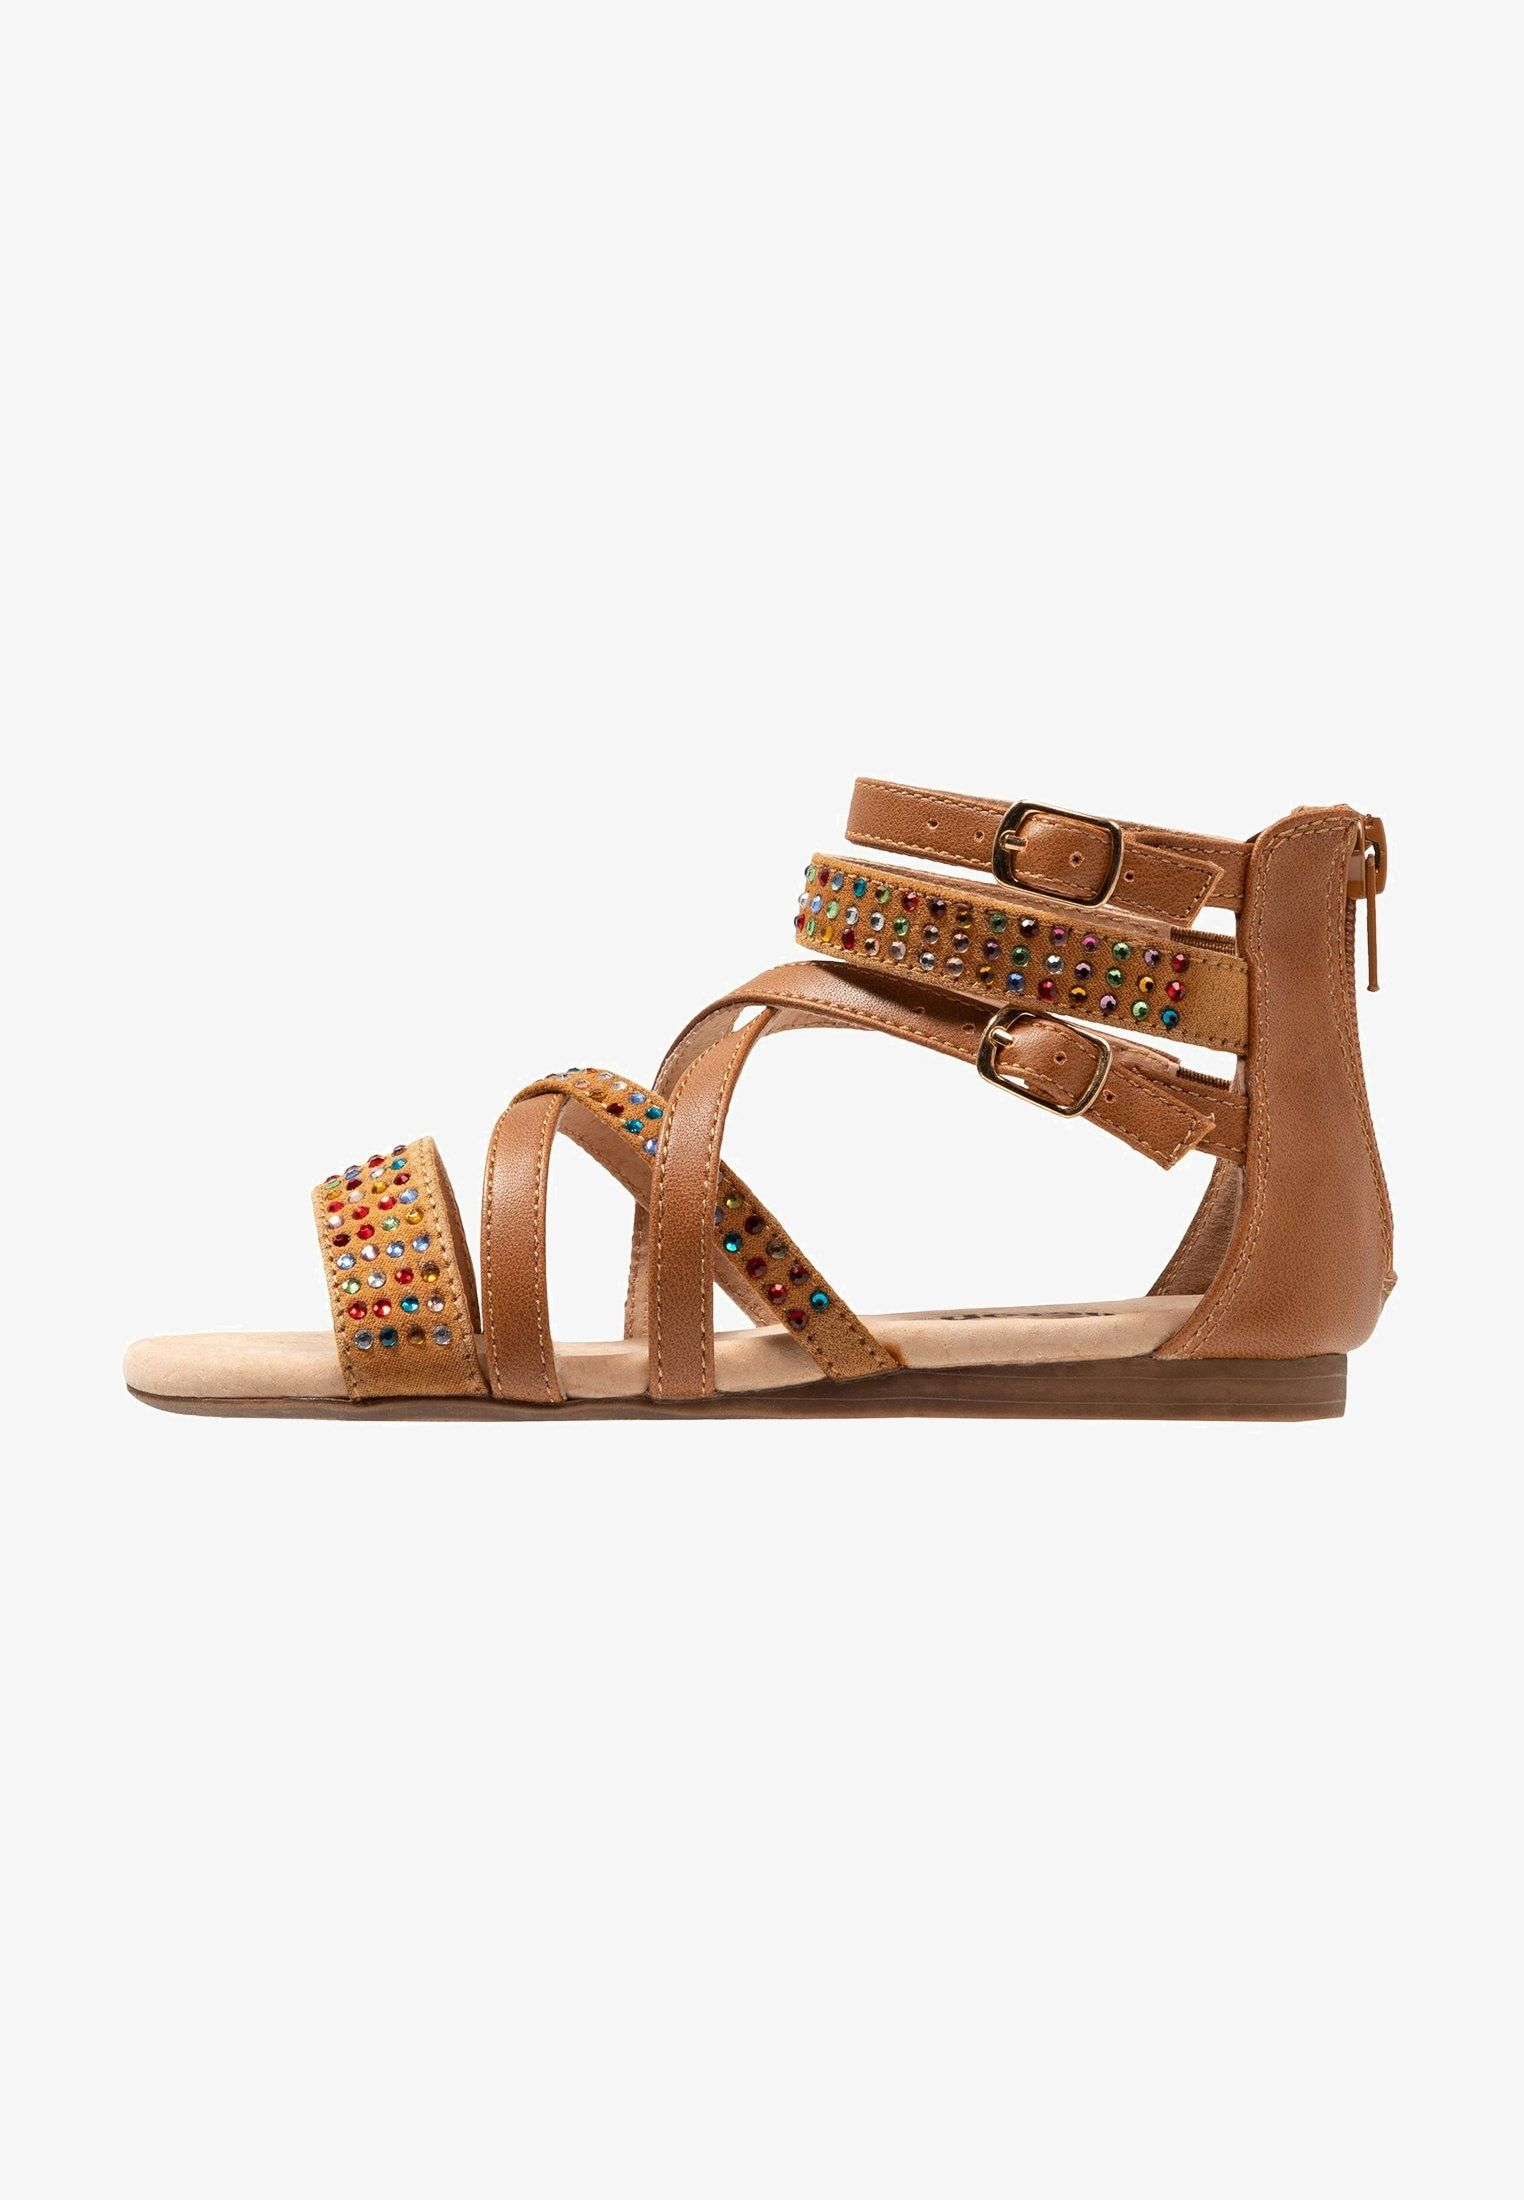 meet reasonable price good texture Riemensandalette - tan @ Zalando.de 🛒 | Girls sandals, Sandals, Belt